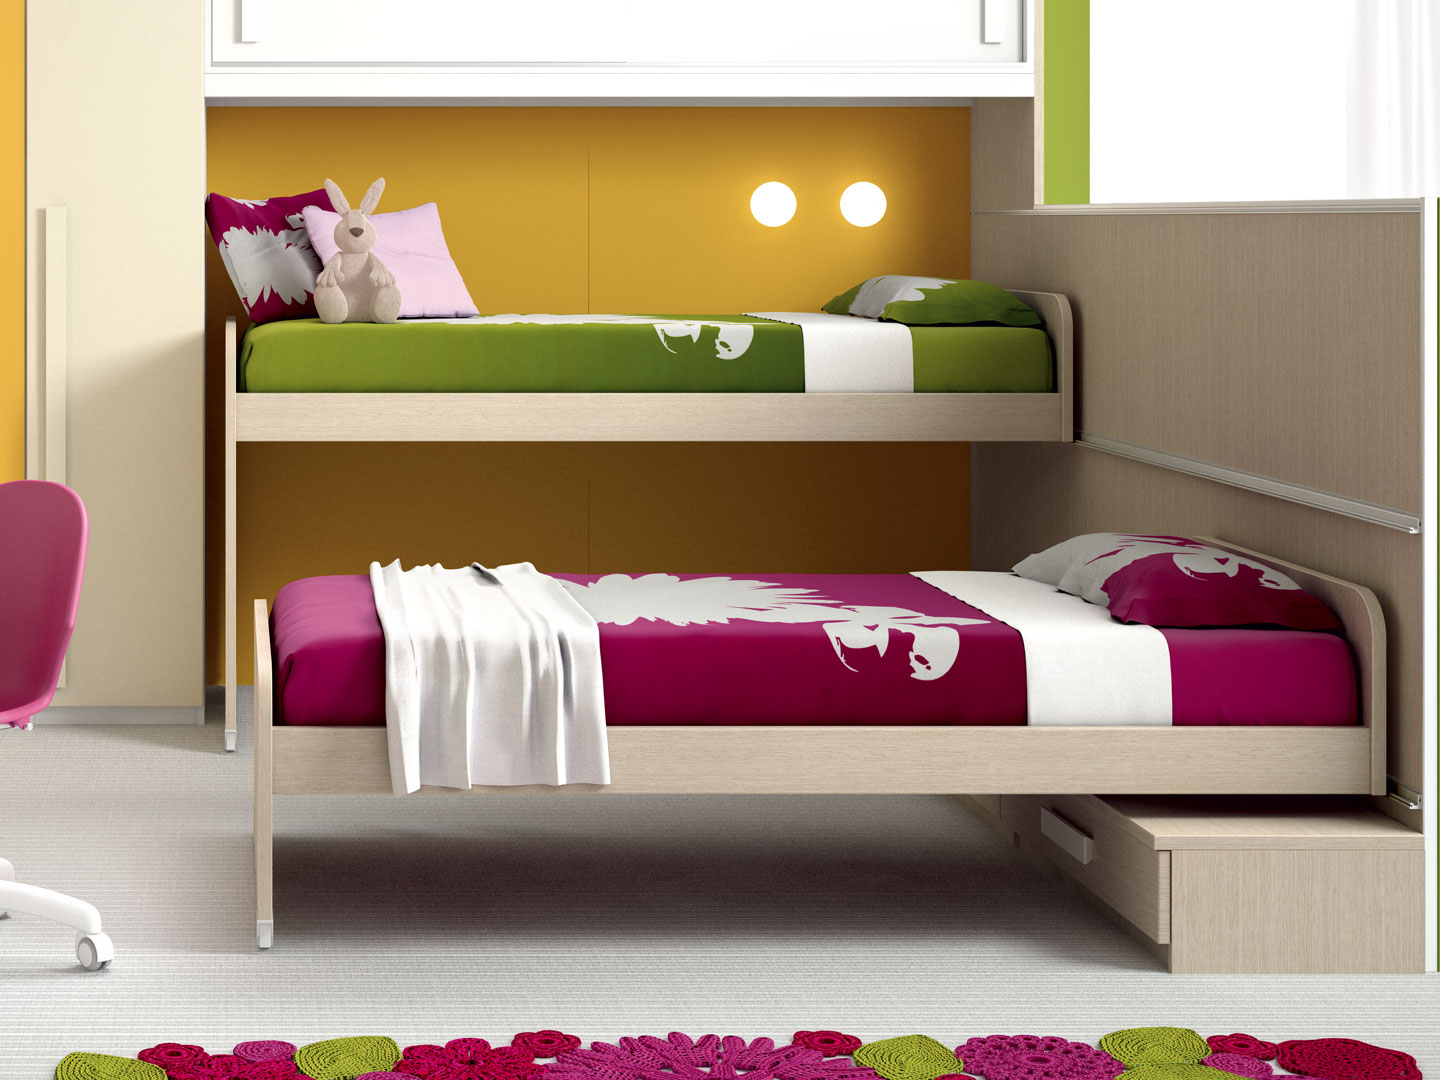 Camerette made in italy ima mobili composizione 2 newformsdesign camerette newformsdesign - Mobili made in italy ...